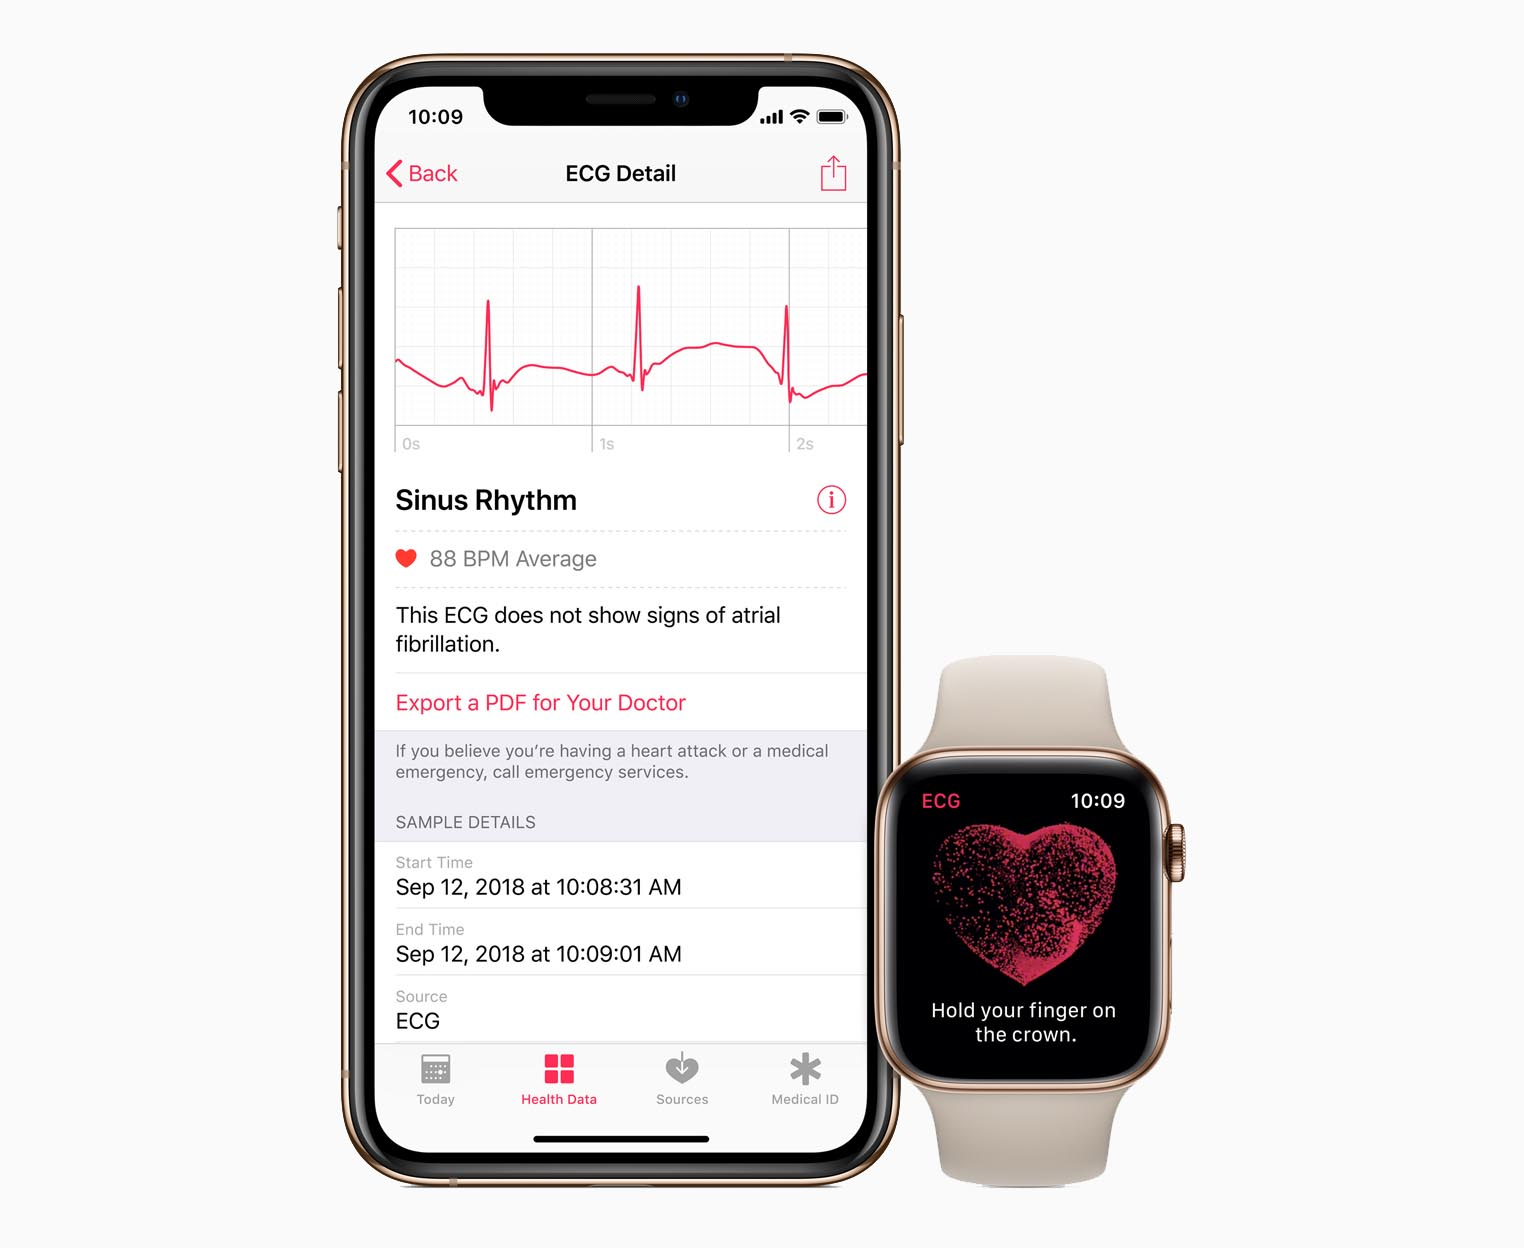 ECG Apple Watch Series 4 Health app